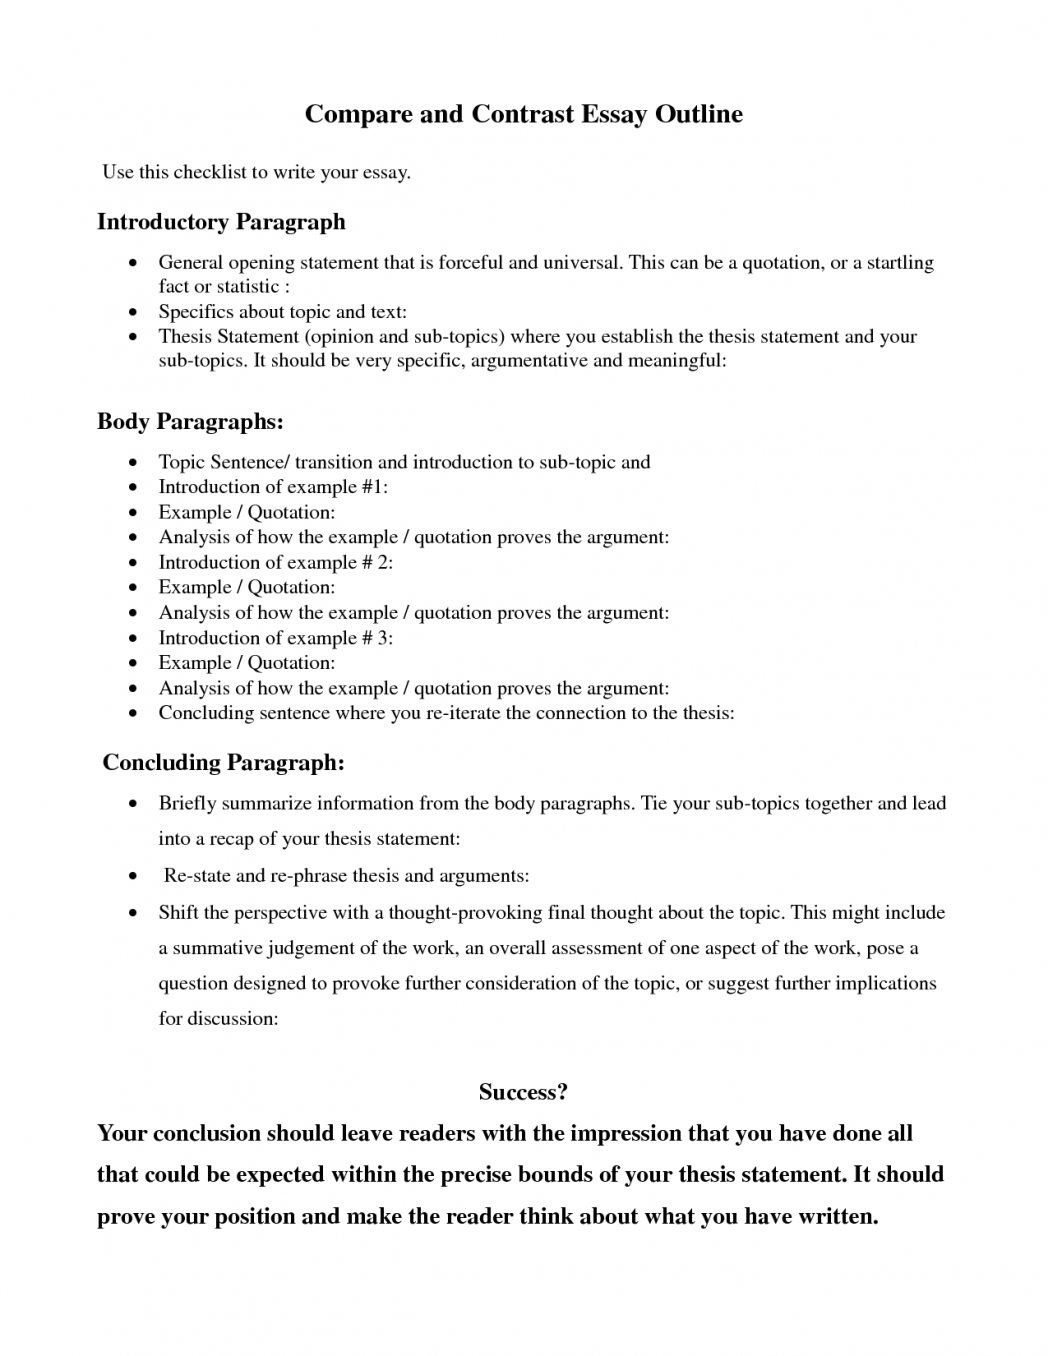 020 Act Essay Format Goal Blockety Co Examples Thesis Statement For Compare And Contrast Template Qak Good Score Pdf 1048x1356 Example How To Wonderful Write Scene Number In A New Killer Full